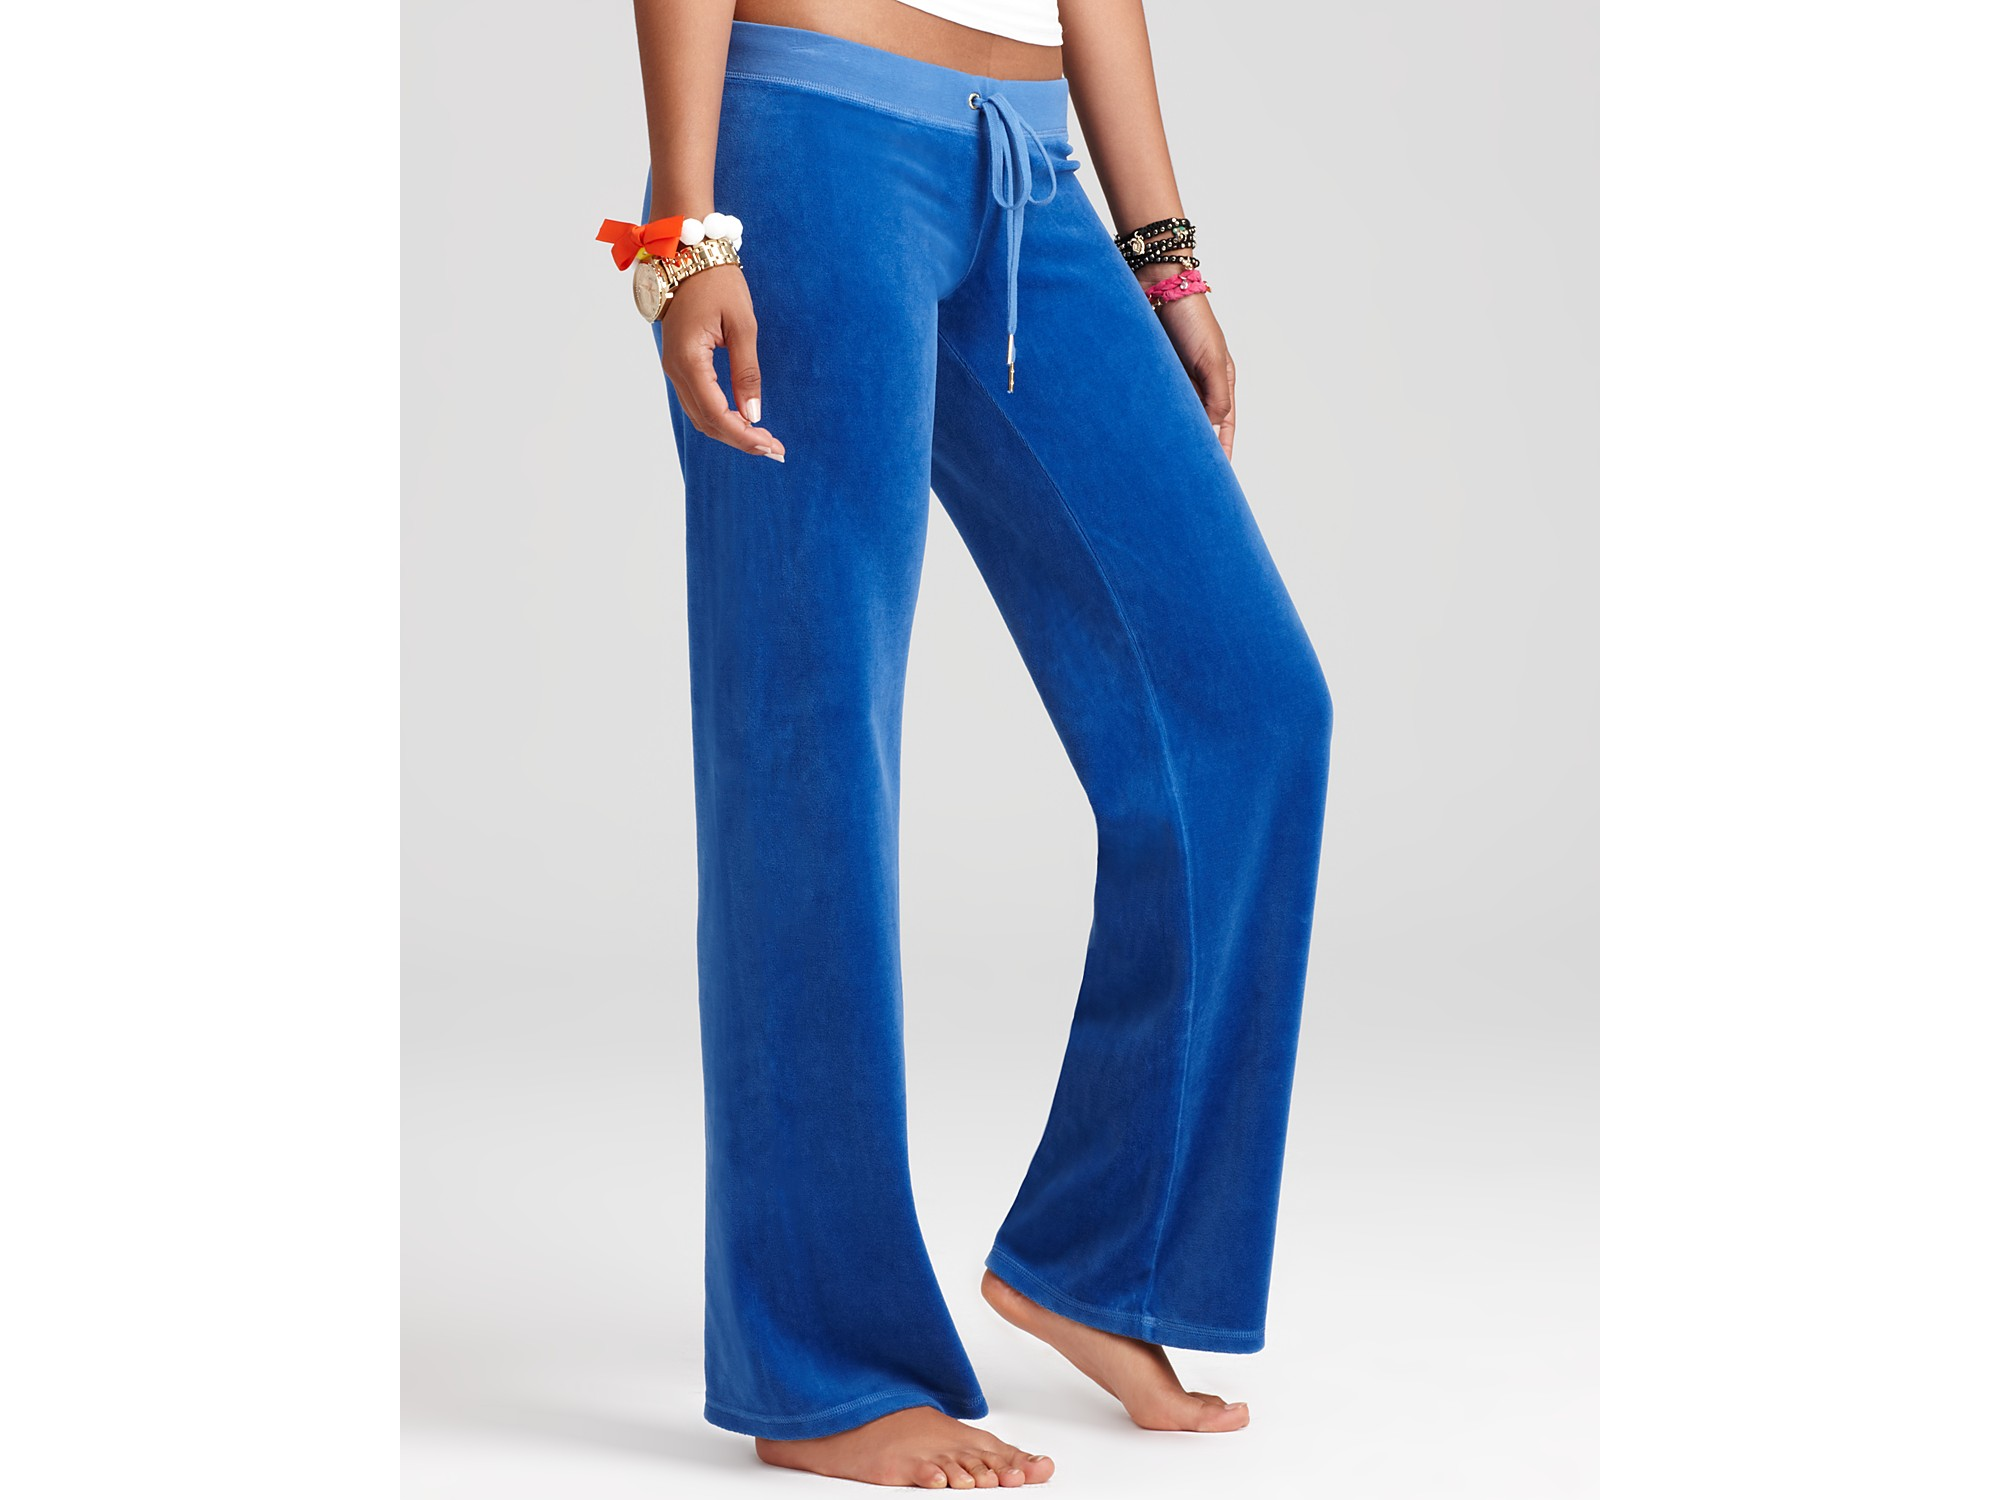 Lyst - Juicy Couture Original Leg Velour Pants with Logo in Blue fb9b6a070